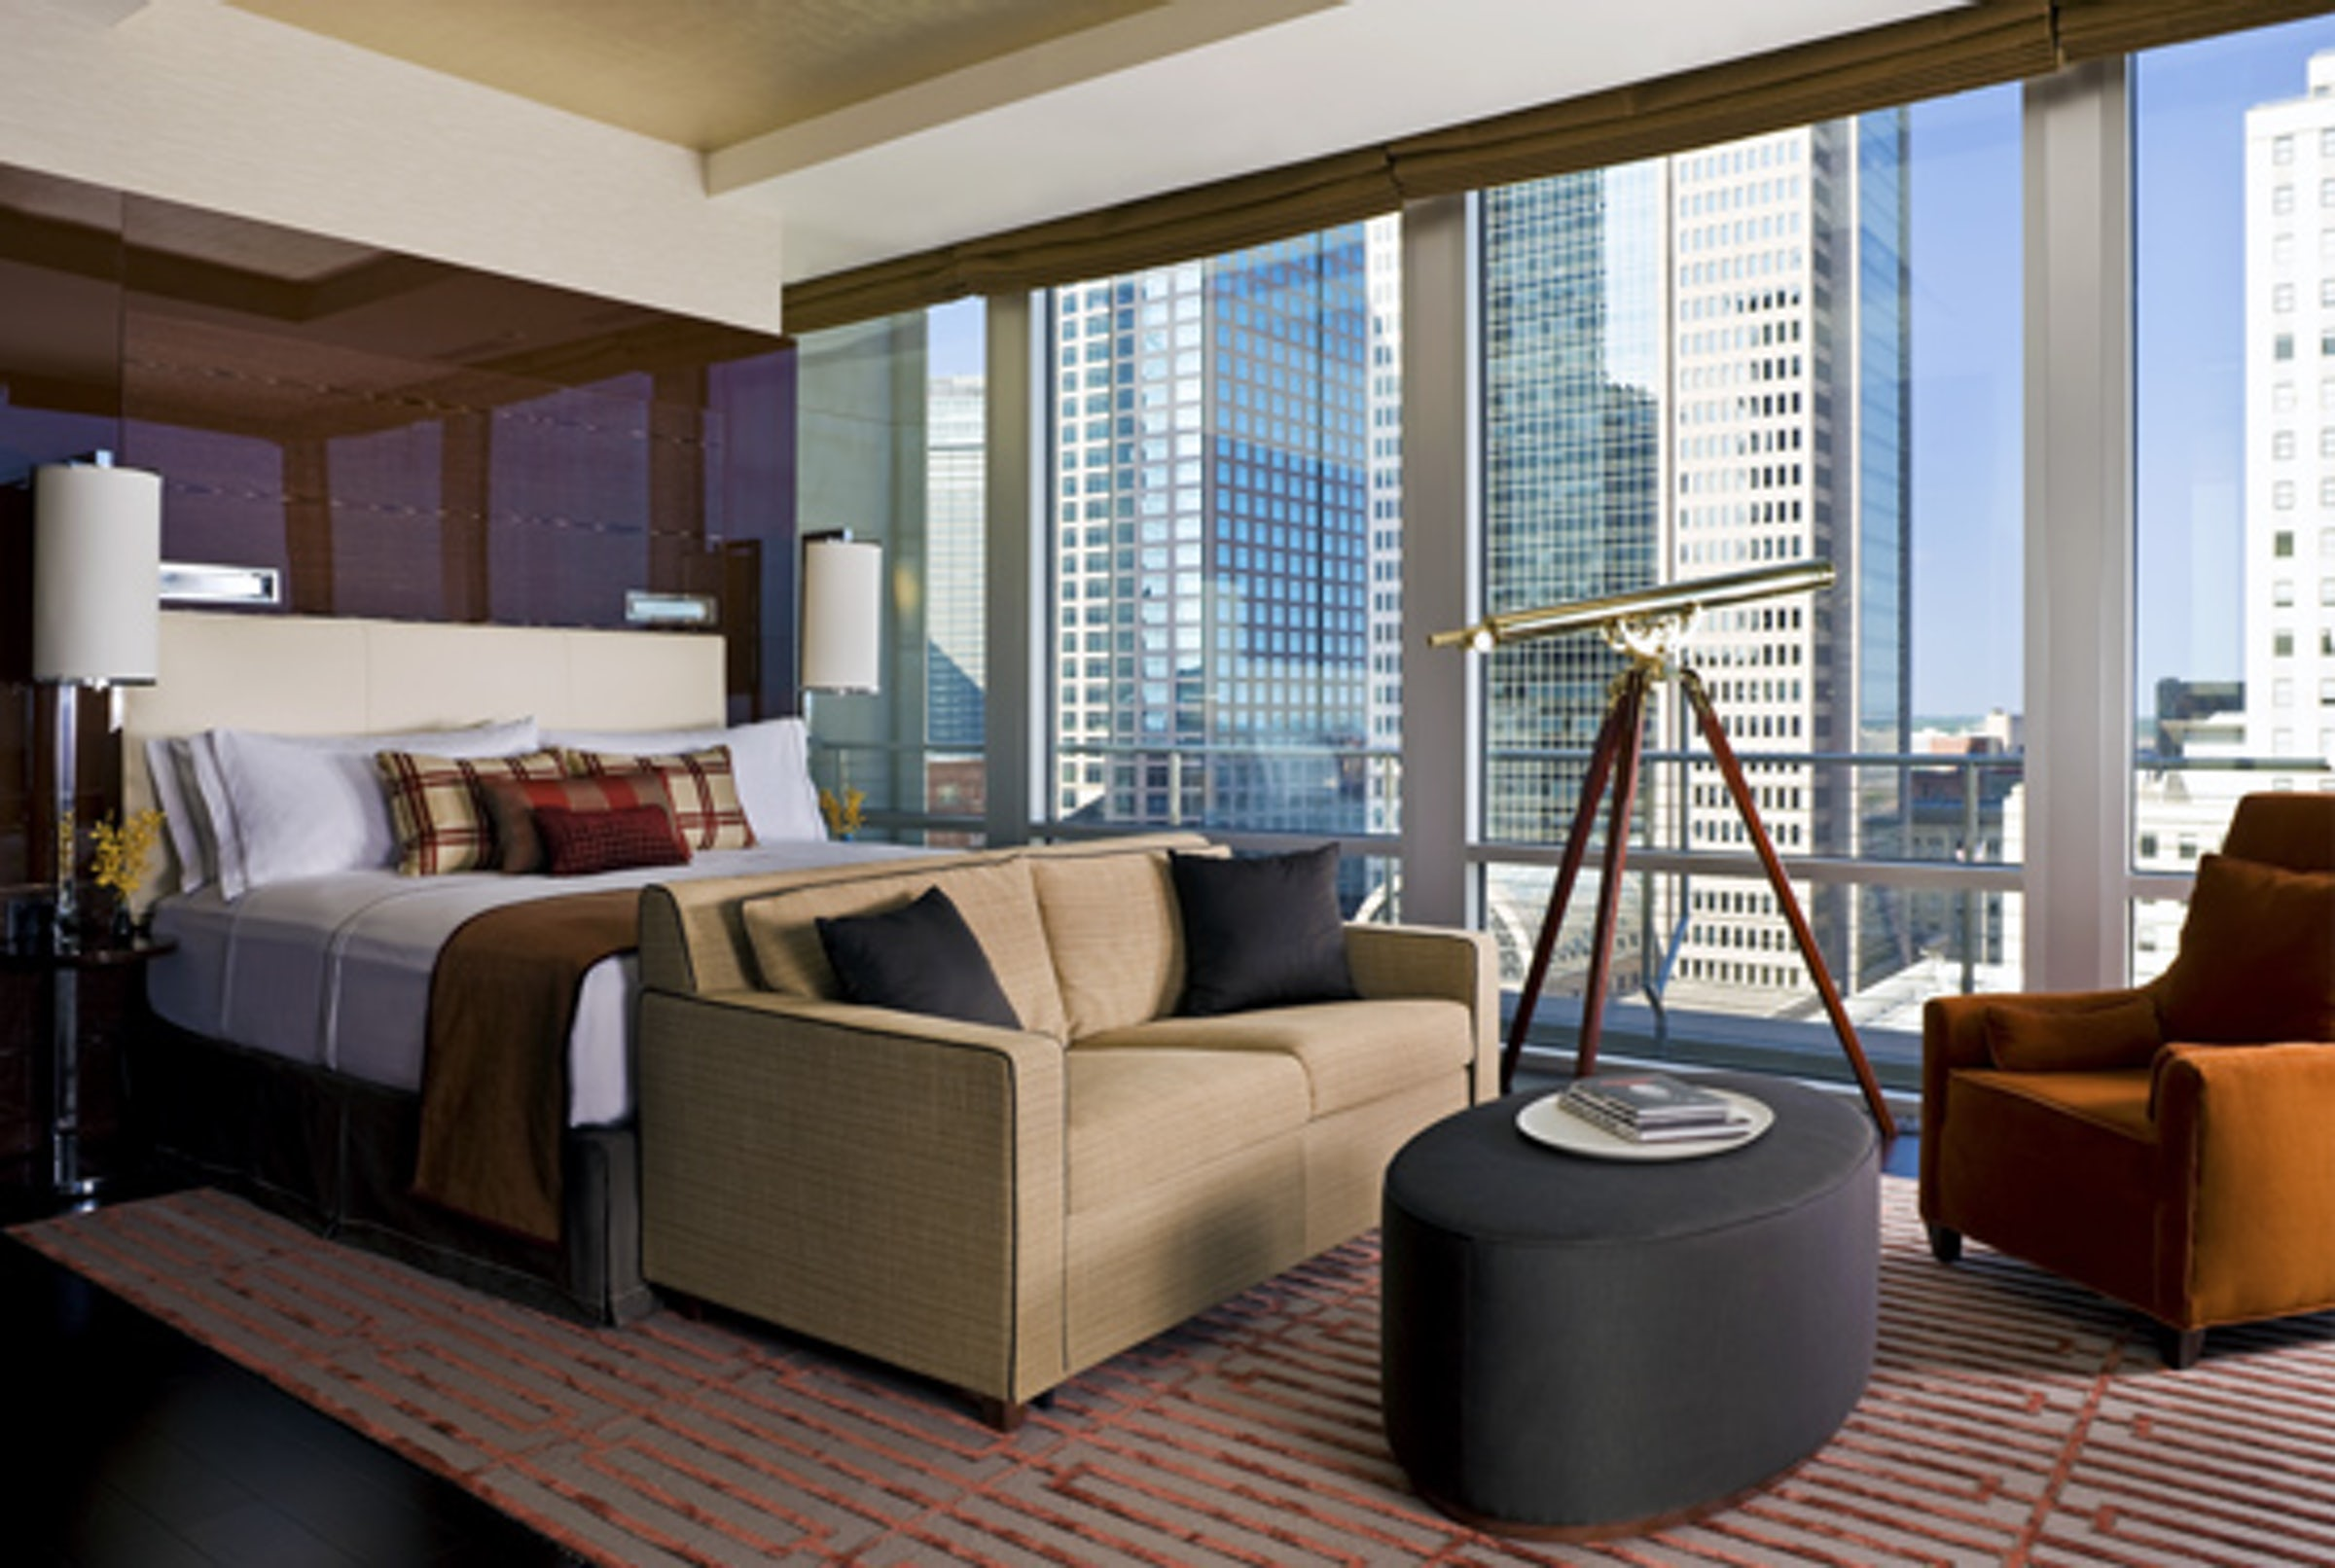 The Joule in Beyond Dallas